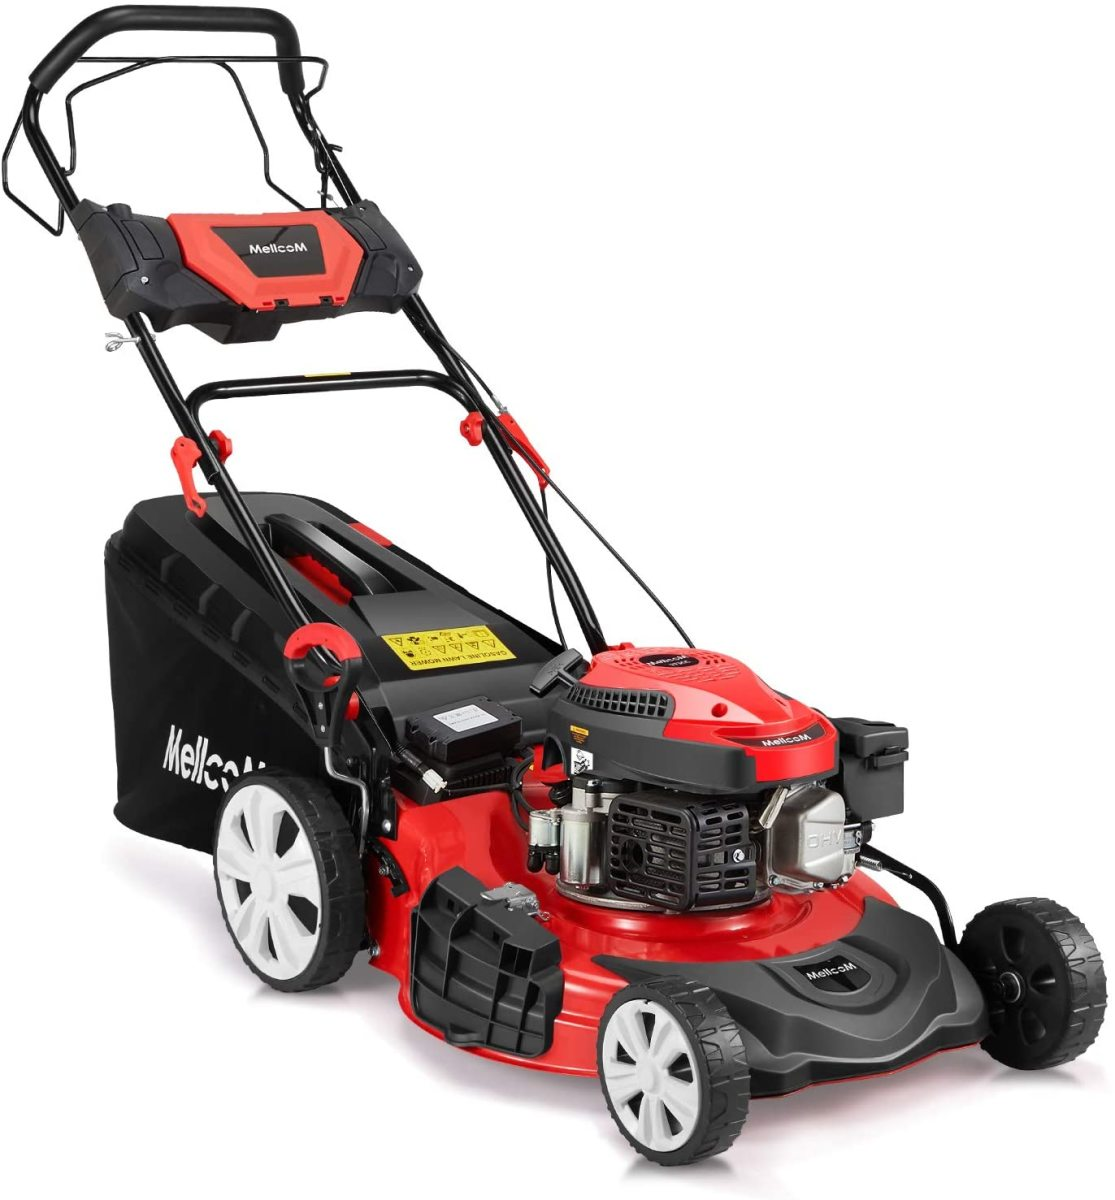 The MELLCOM Gas Lawn Mower Electric Start 4-Cycle 173cc OHV 21-Inch Trimming Mower.